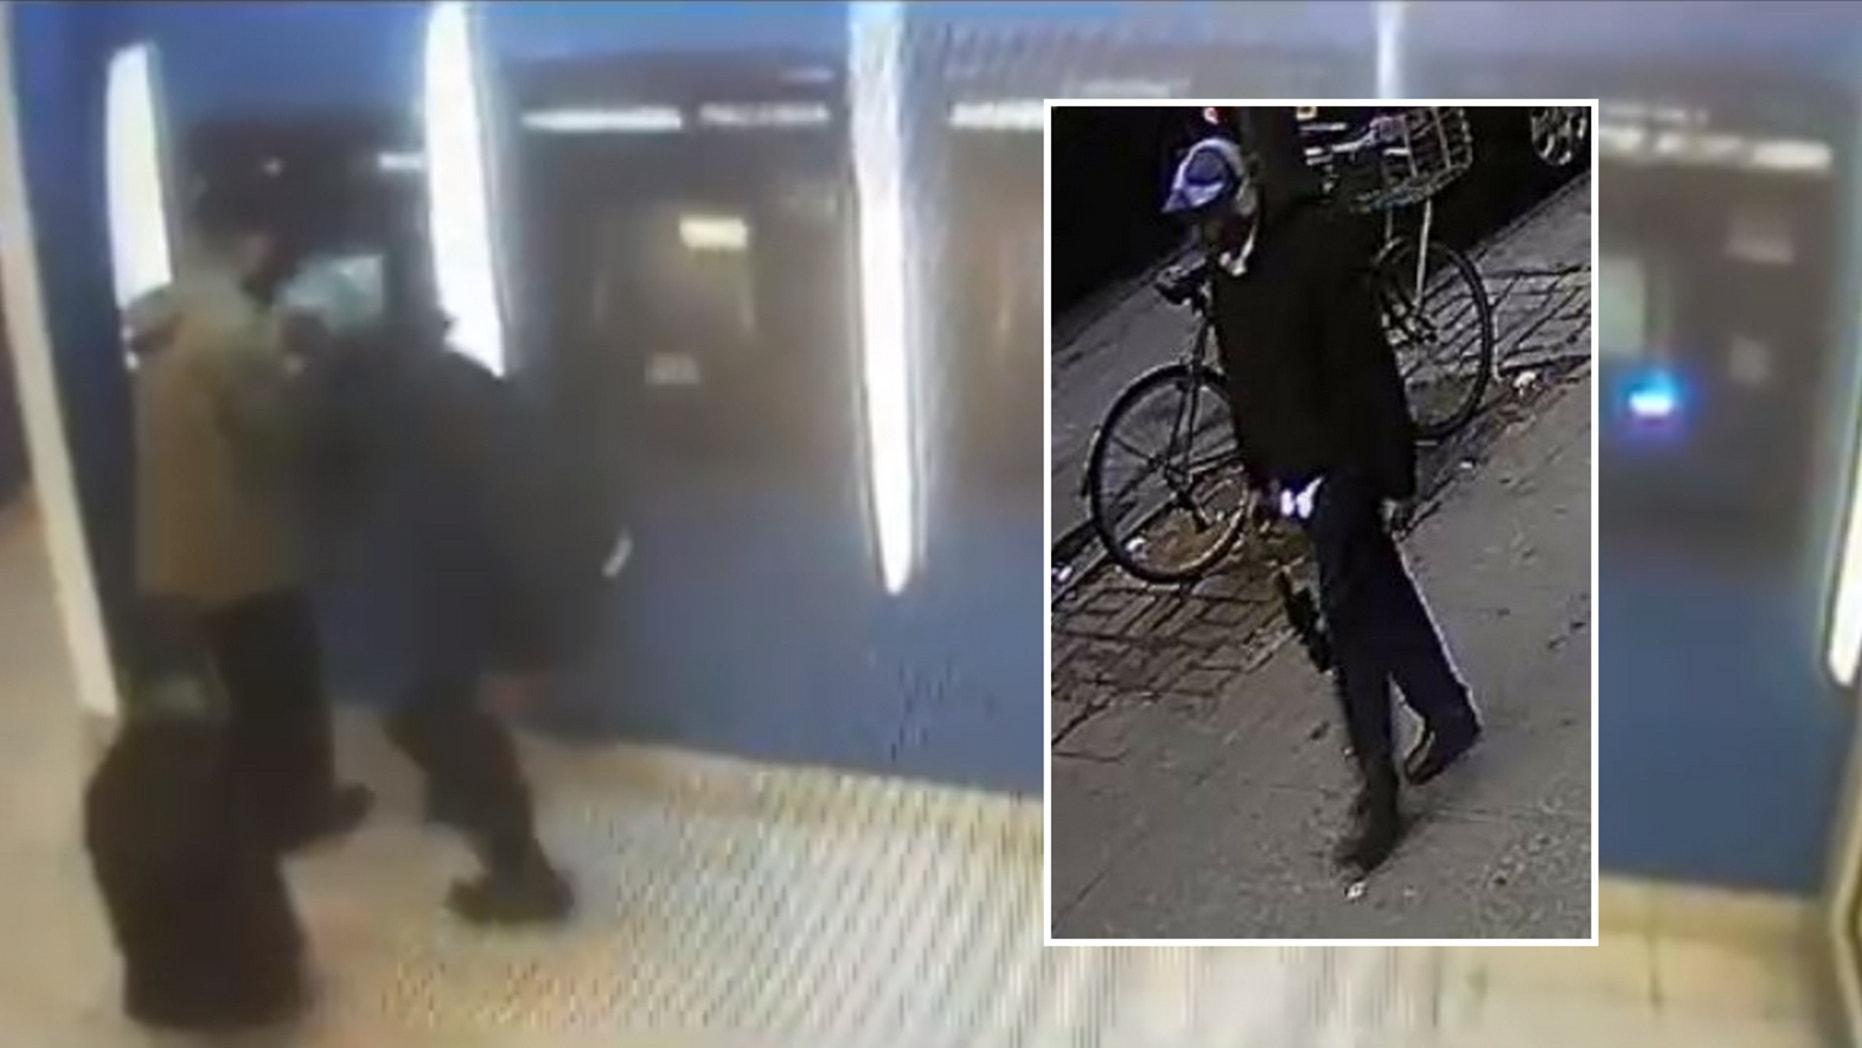 An 87-year-old professor is in extremely critical condition after being attacked inside a New York City bank. (NYPD)